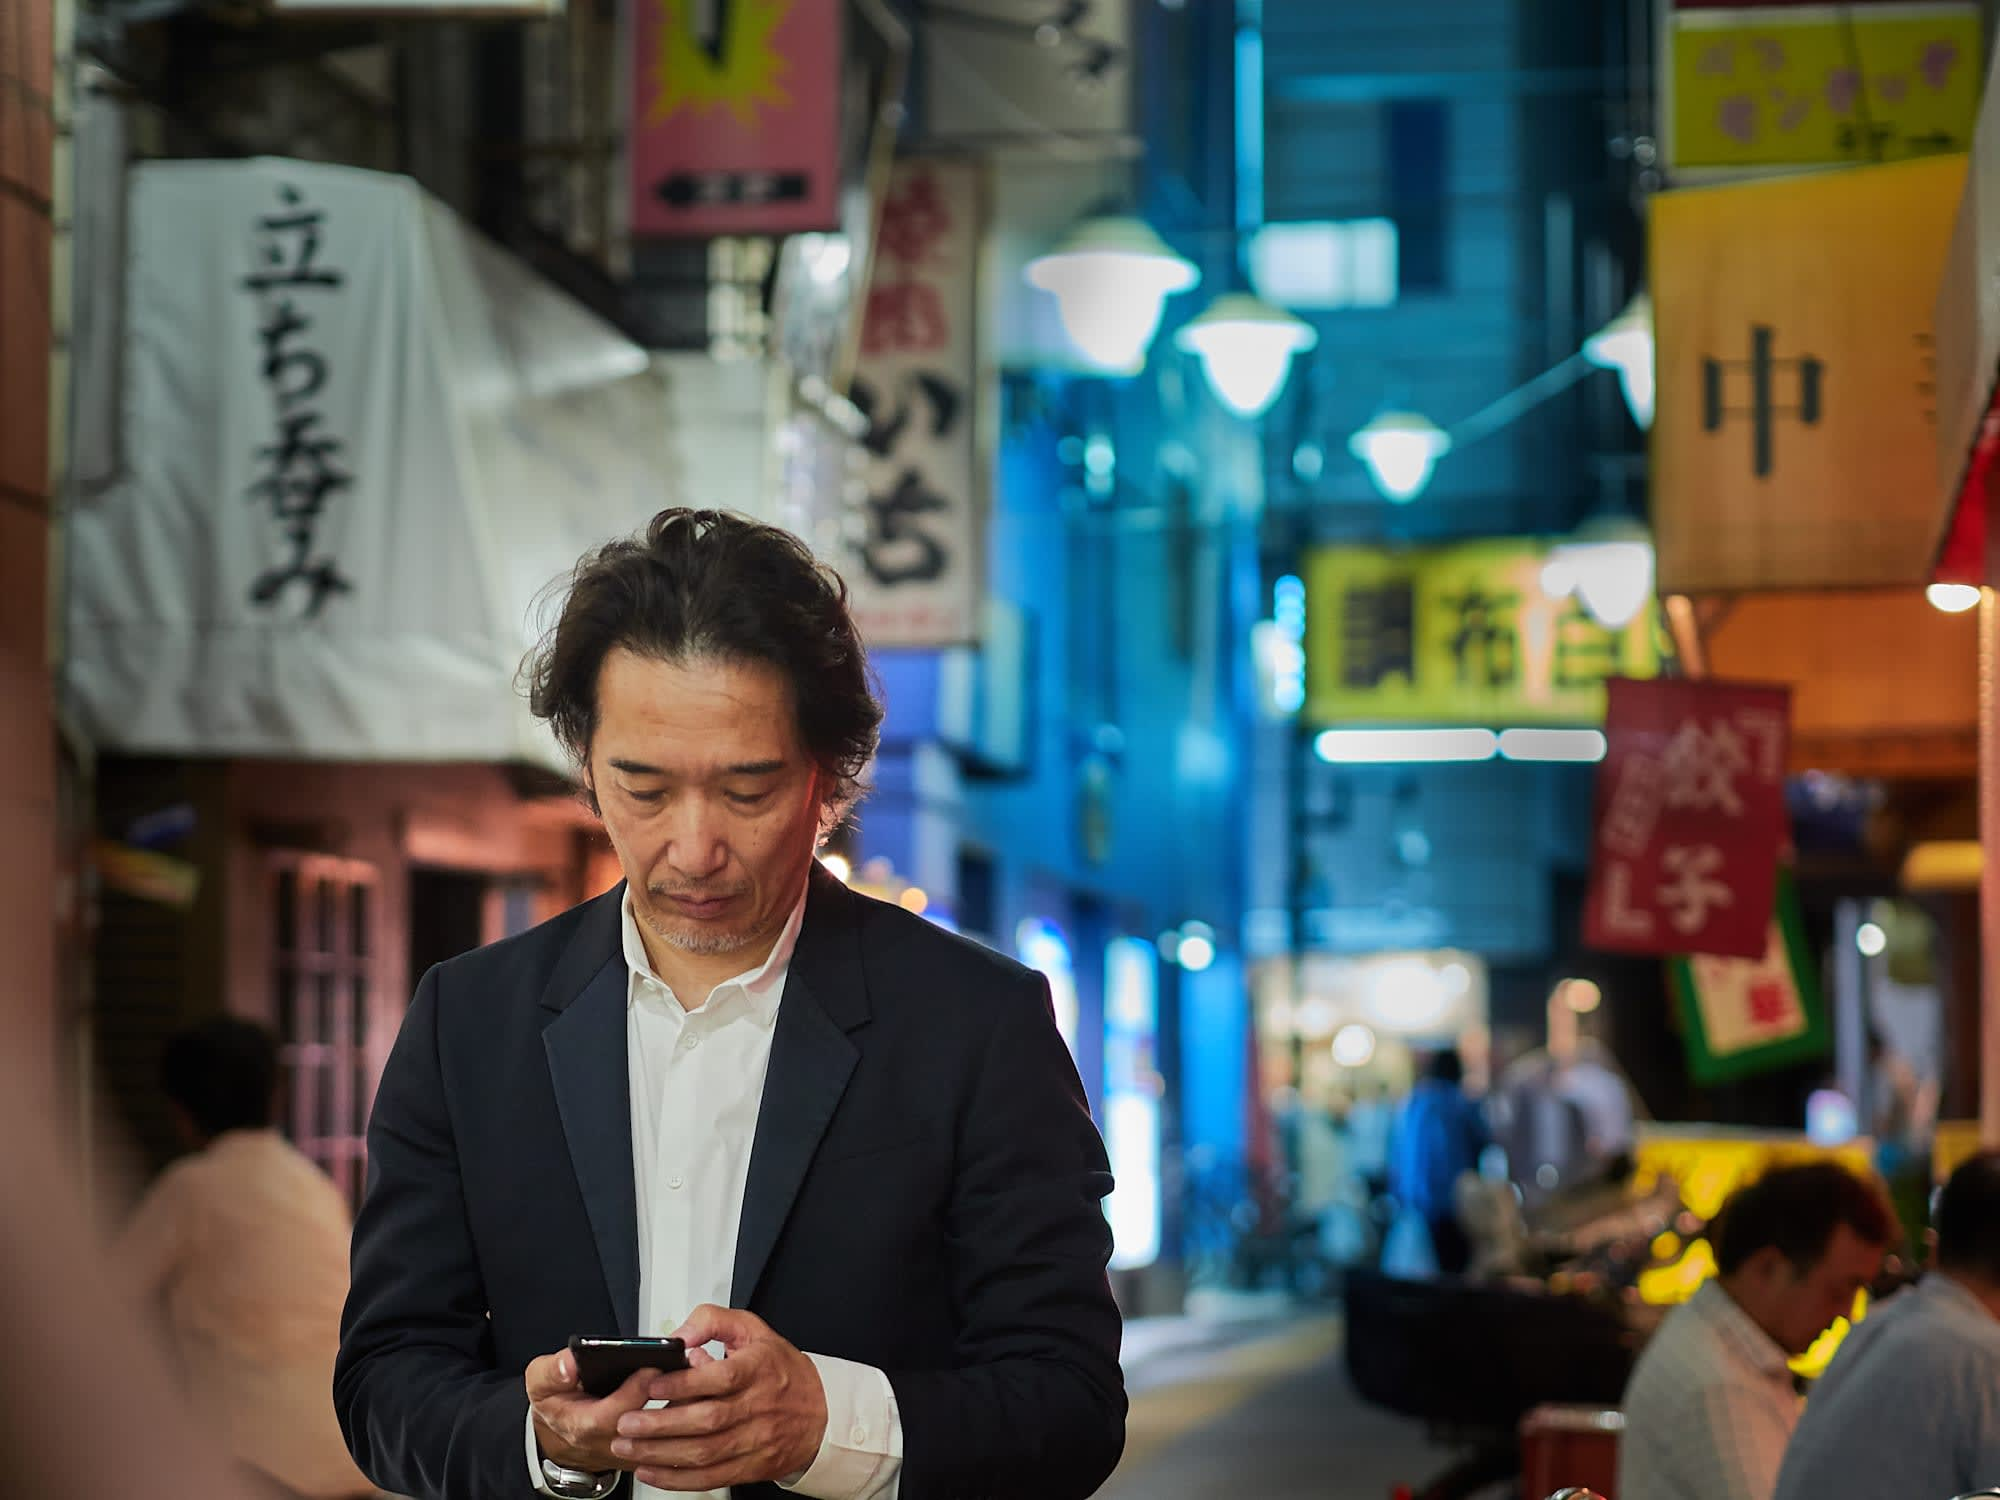 Japan is running out of phone numbers